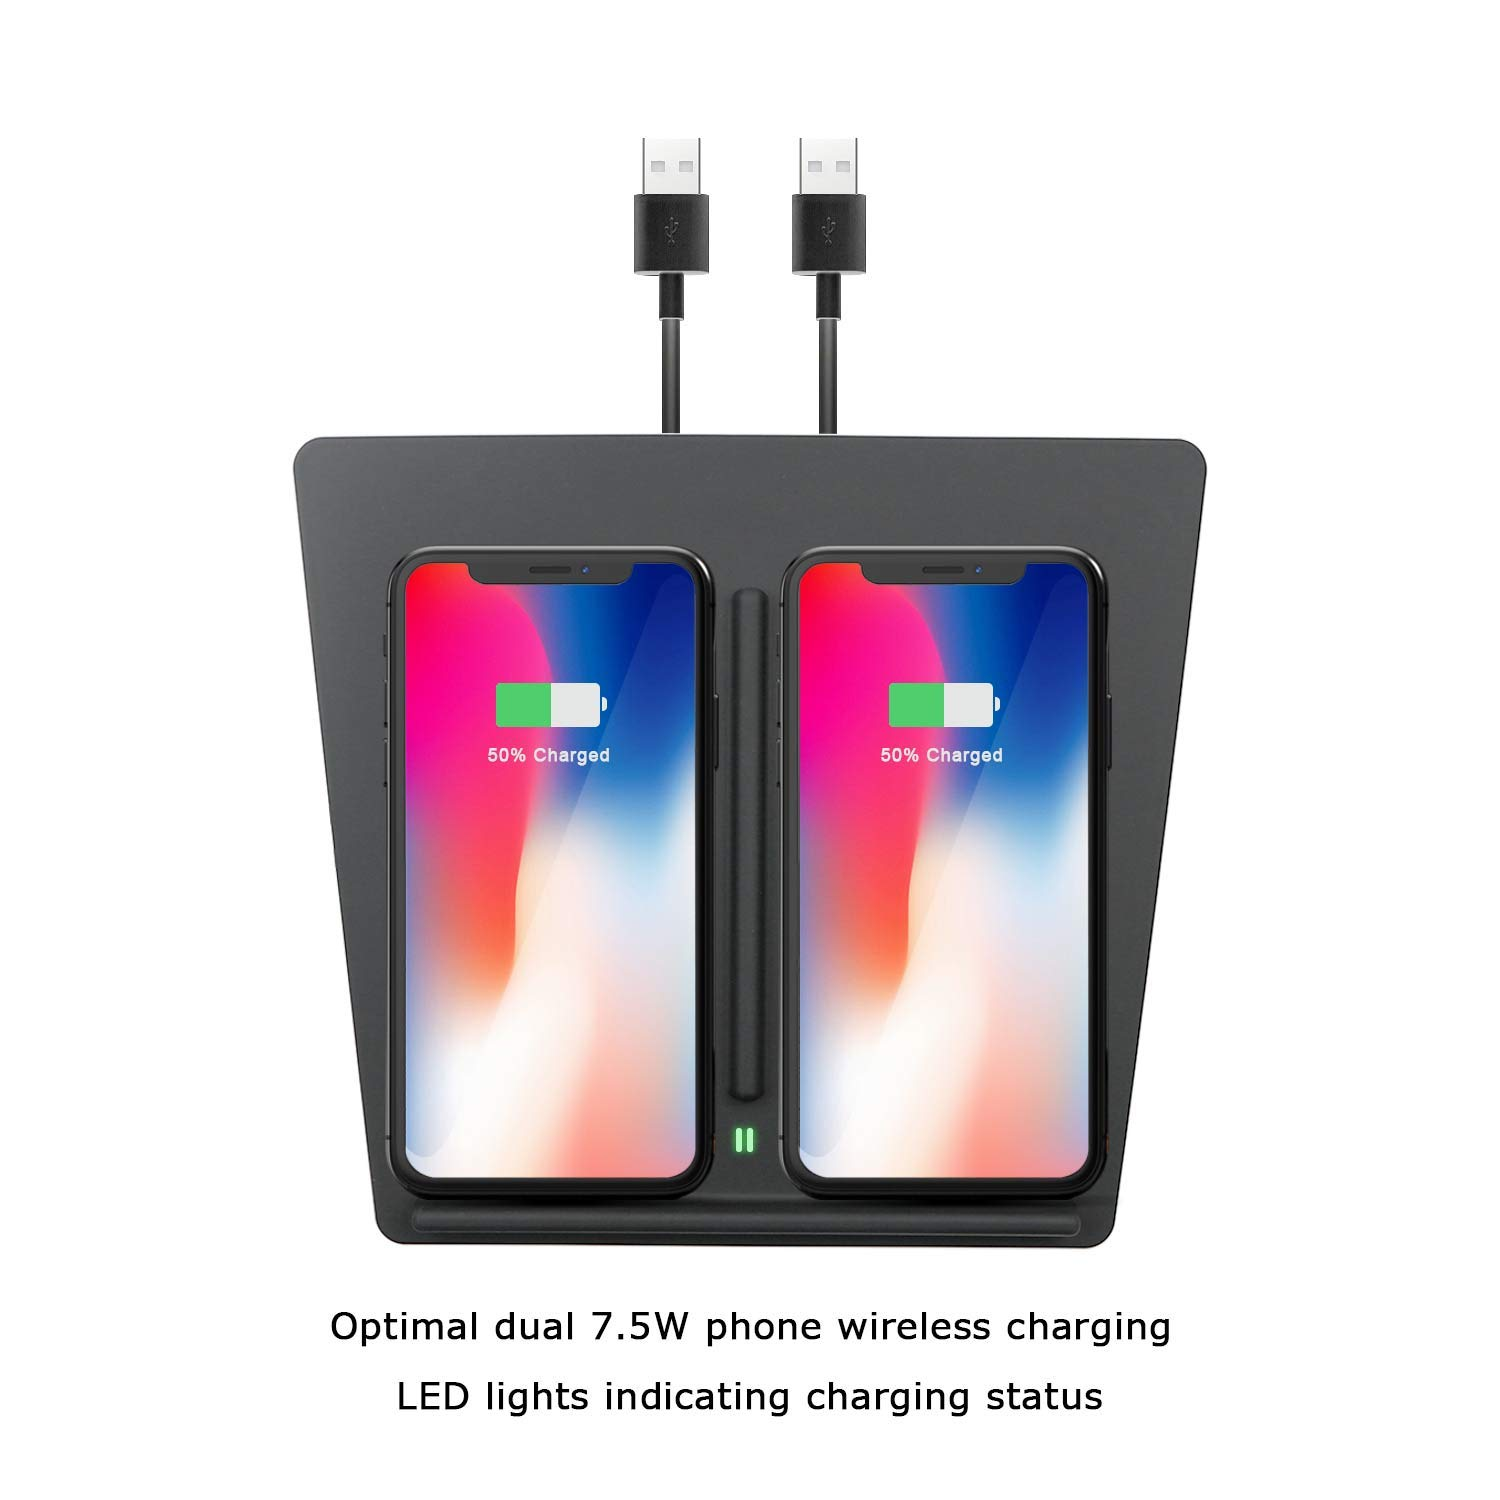 Wireless Charging Pad for Tesla Model 3 P50 P65 P80 P80D,LFOTPP Dual Phones on Board Car Accessories,Customized Phone Wireless Charger Pad Panel,All Qi-Enabled Phones